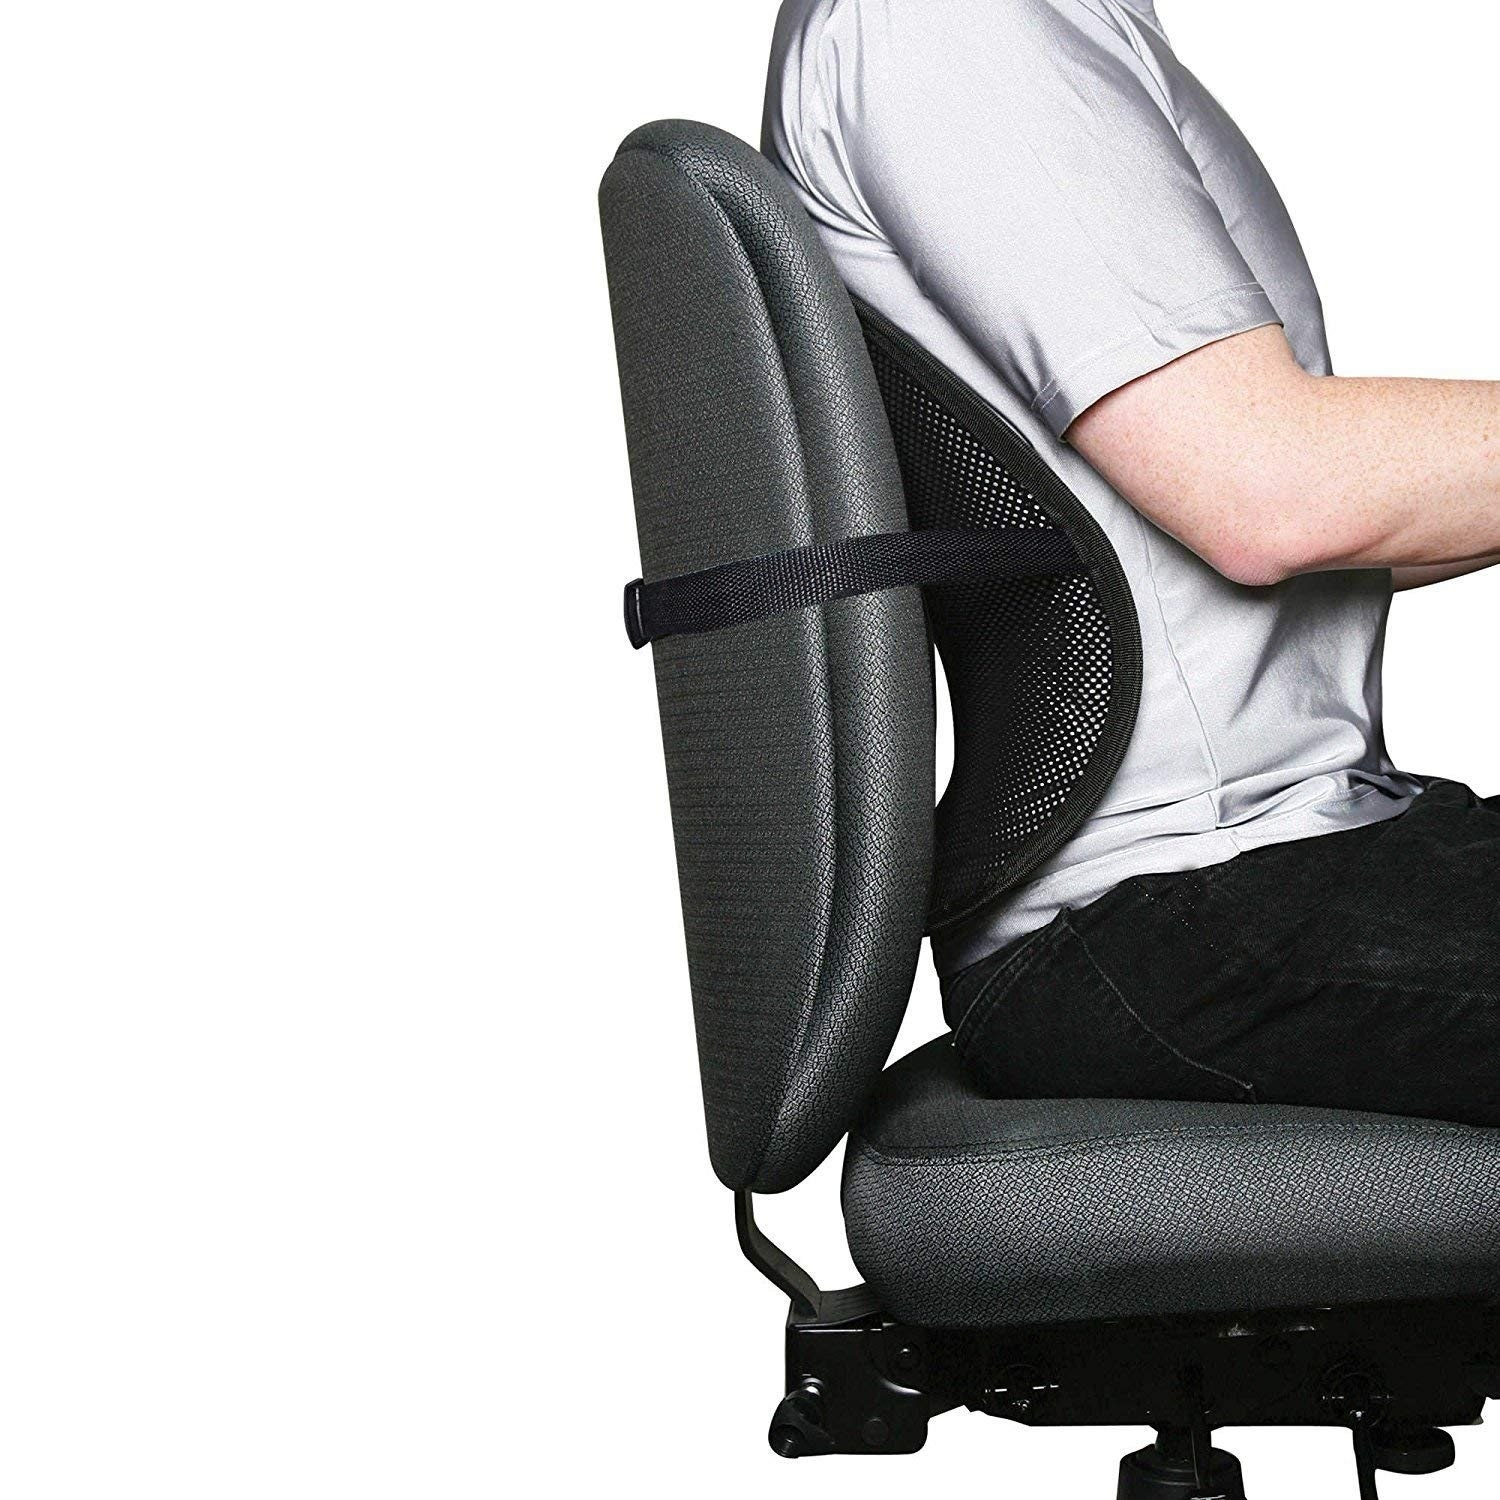 A person sitting on a chair with the support cushion attached.